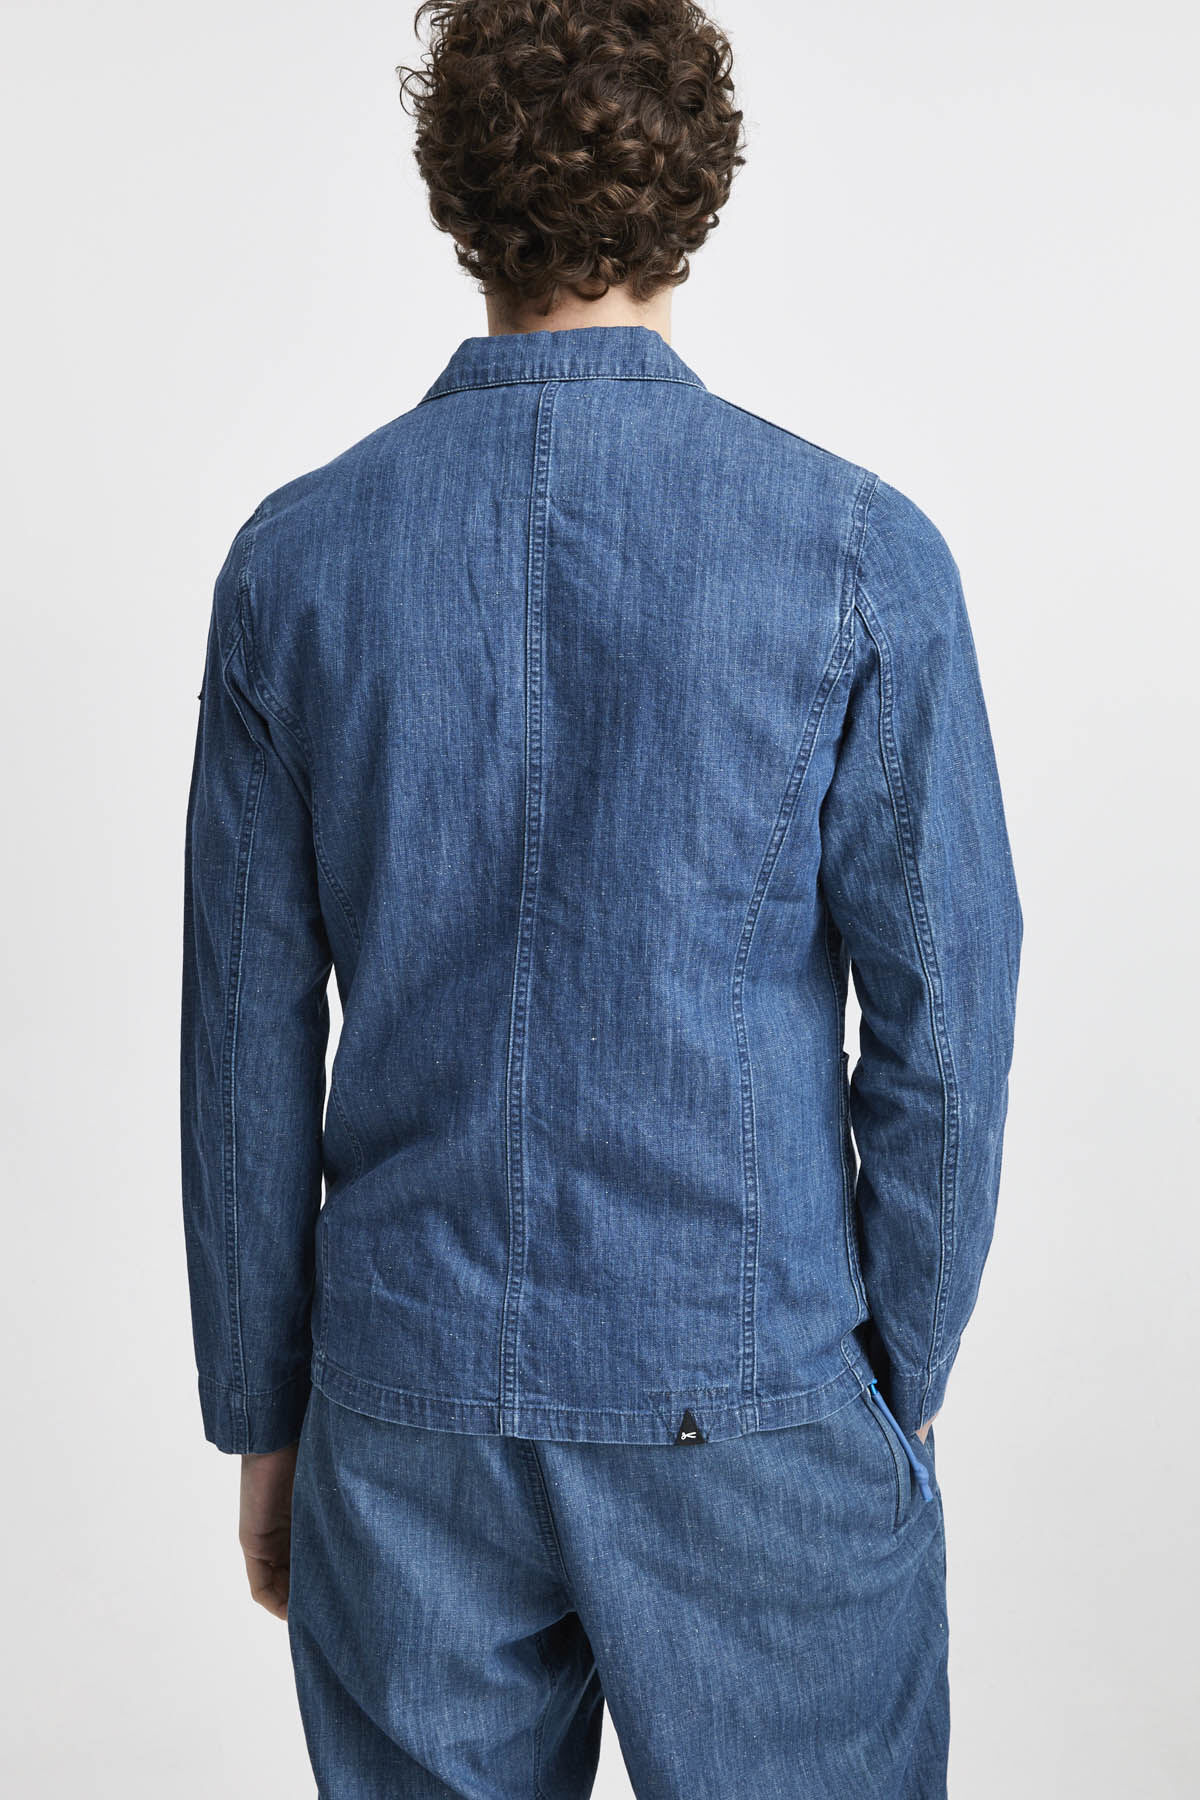 MAO JACKET Organic Cotton & Hemp Denim - Slim Fit